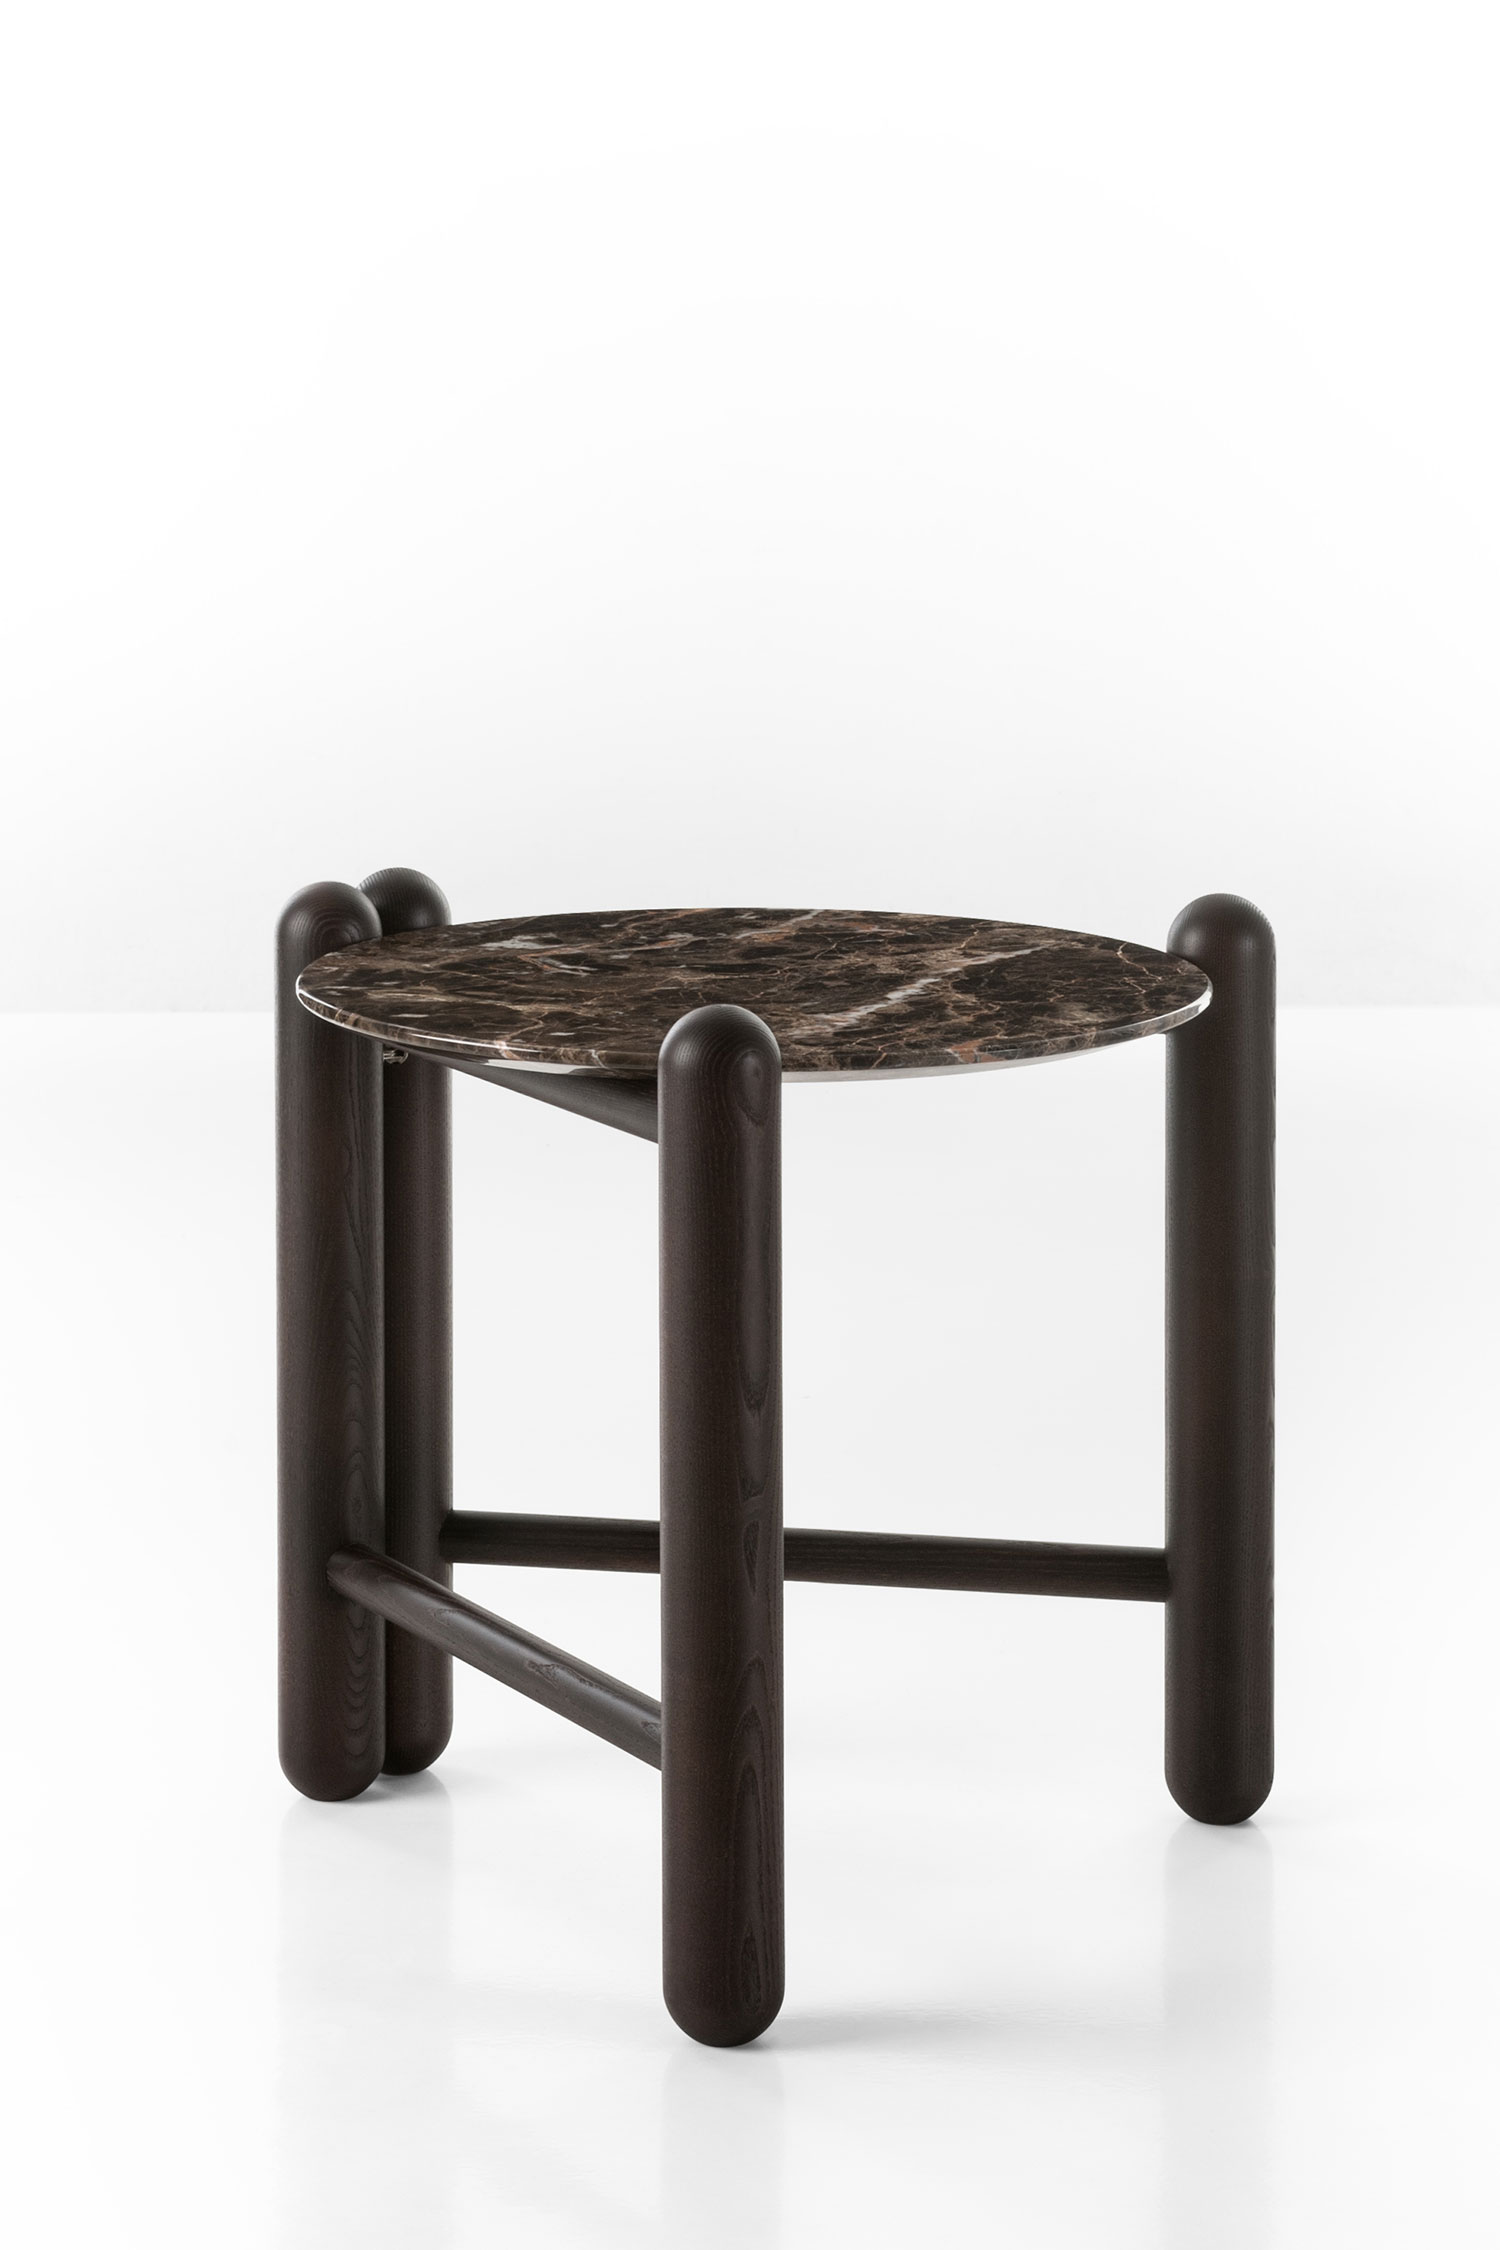 Gebruder Thonet HOLD ON side table by Nicola Gallizia - Best of Salone Del Mobile 2015   Yellowtrace